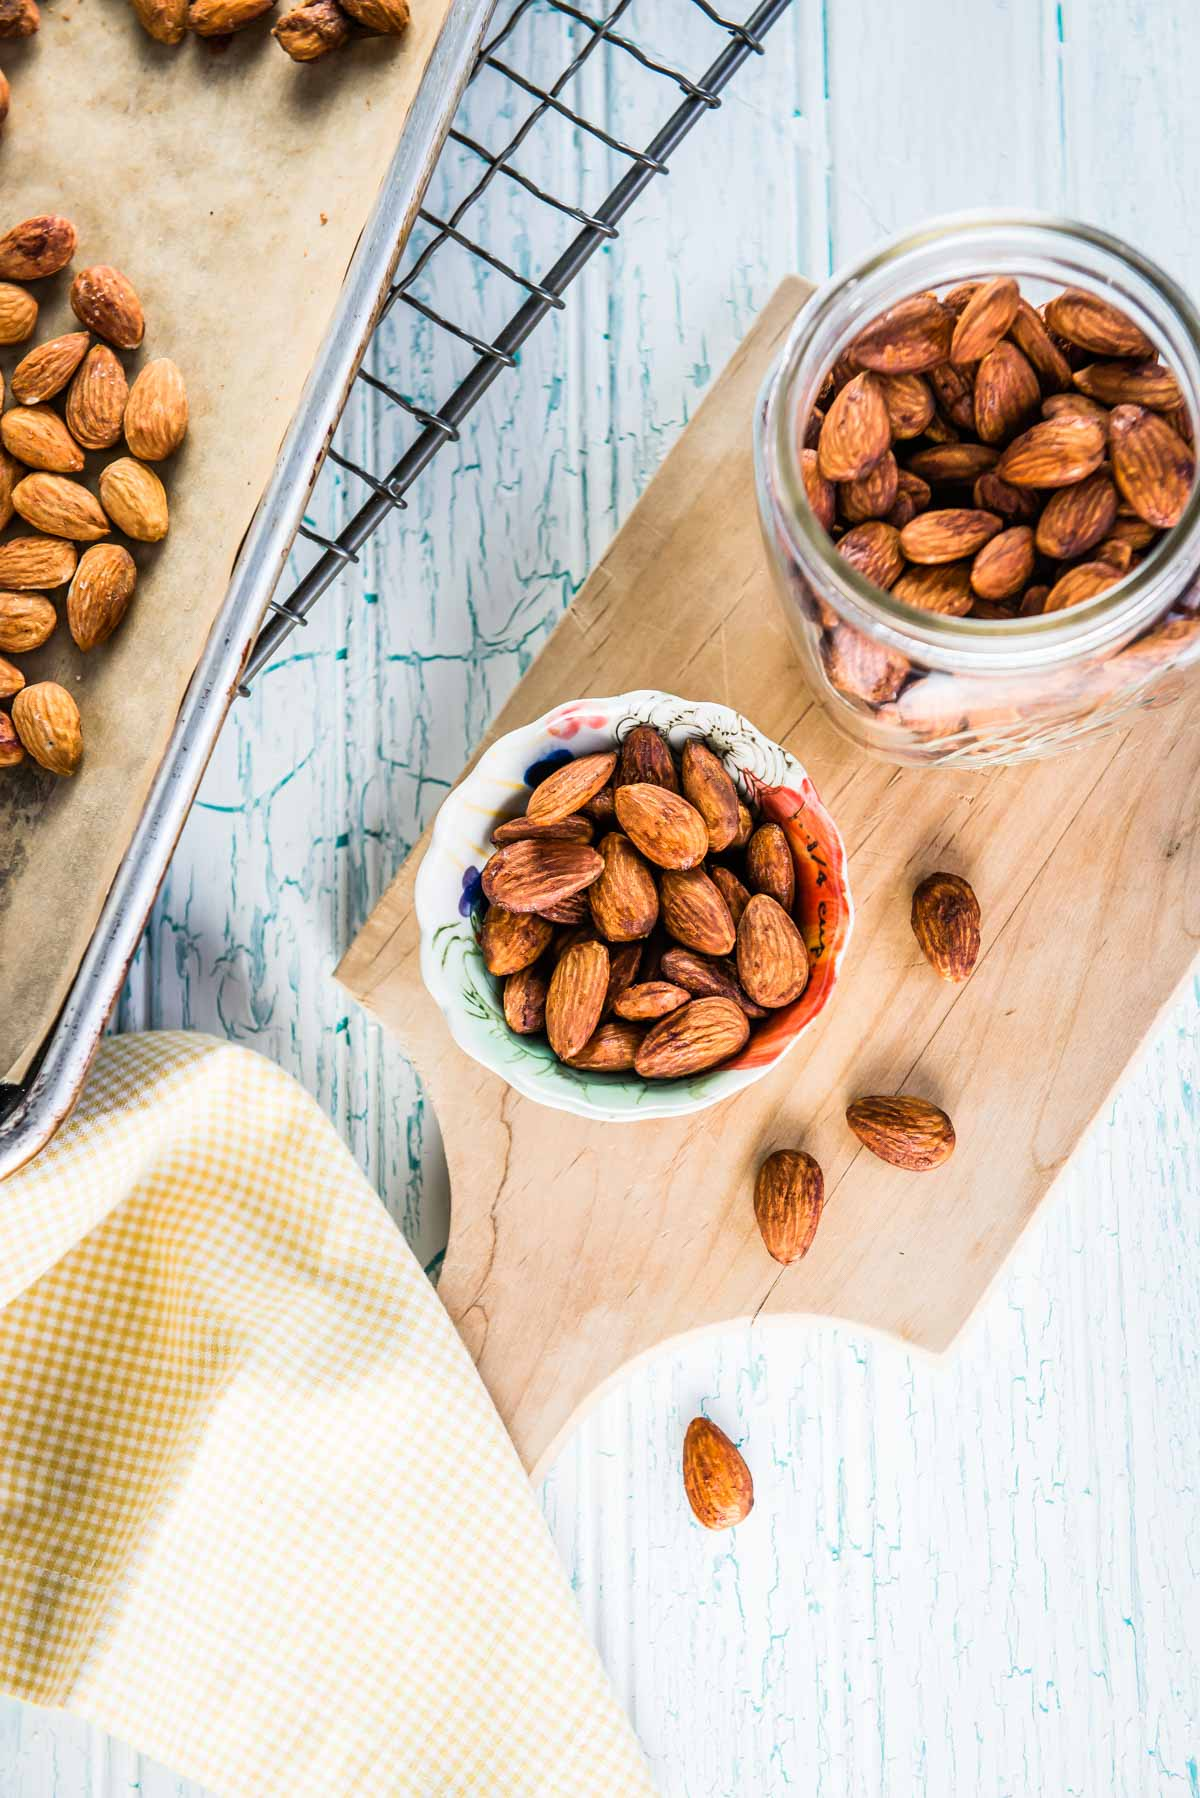 Almonds make a great healthy snack for weight loss